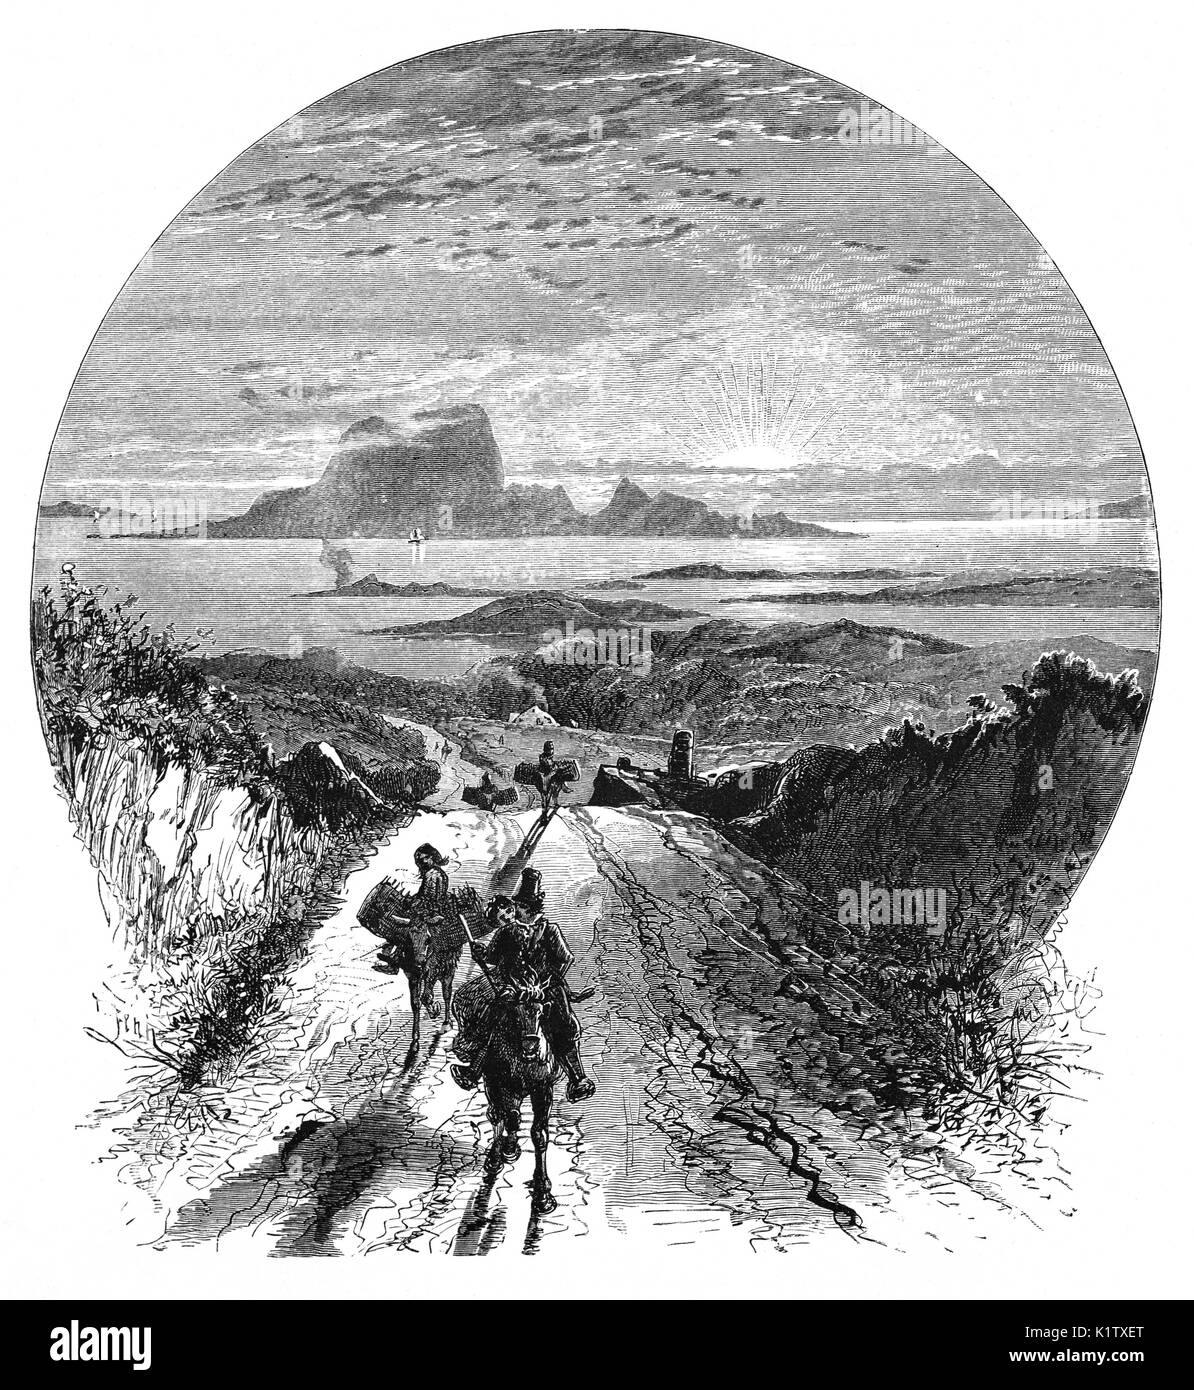 1870: Bringing home the turf (peat) by donkey with Clare Island and Clew Bay in the background, County Mayo, Ireland - Stock Image